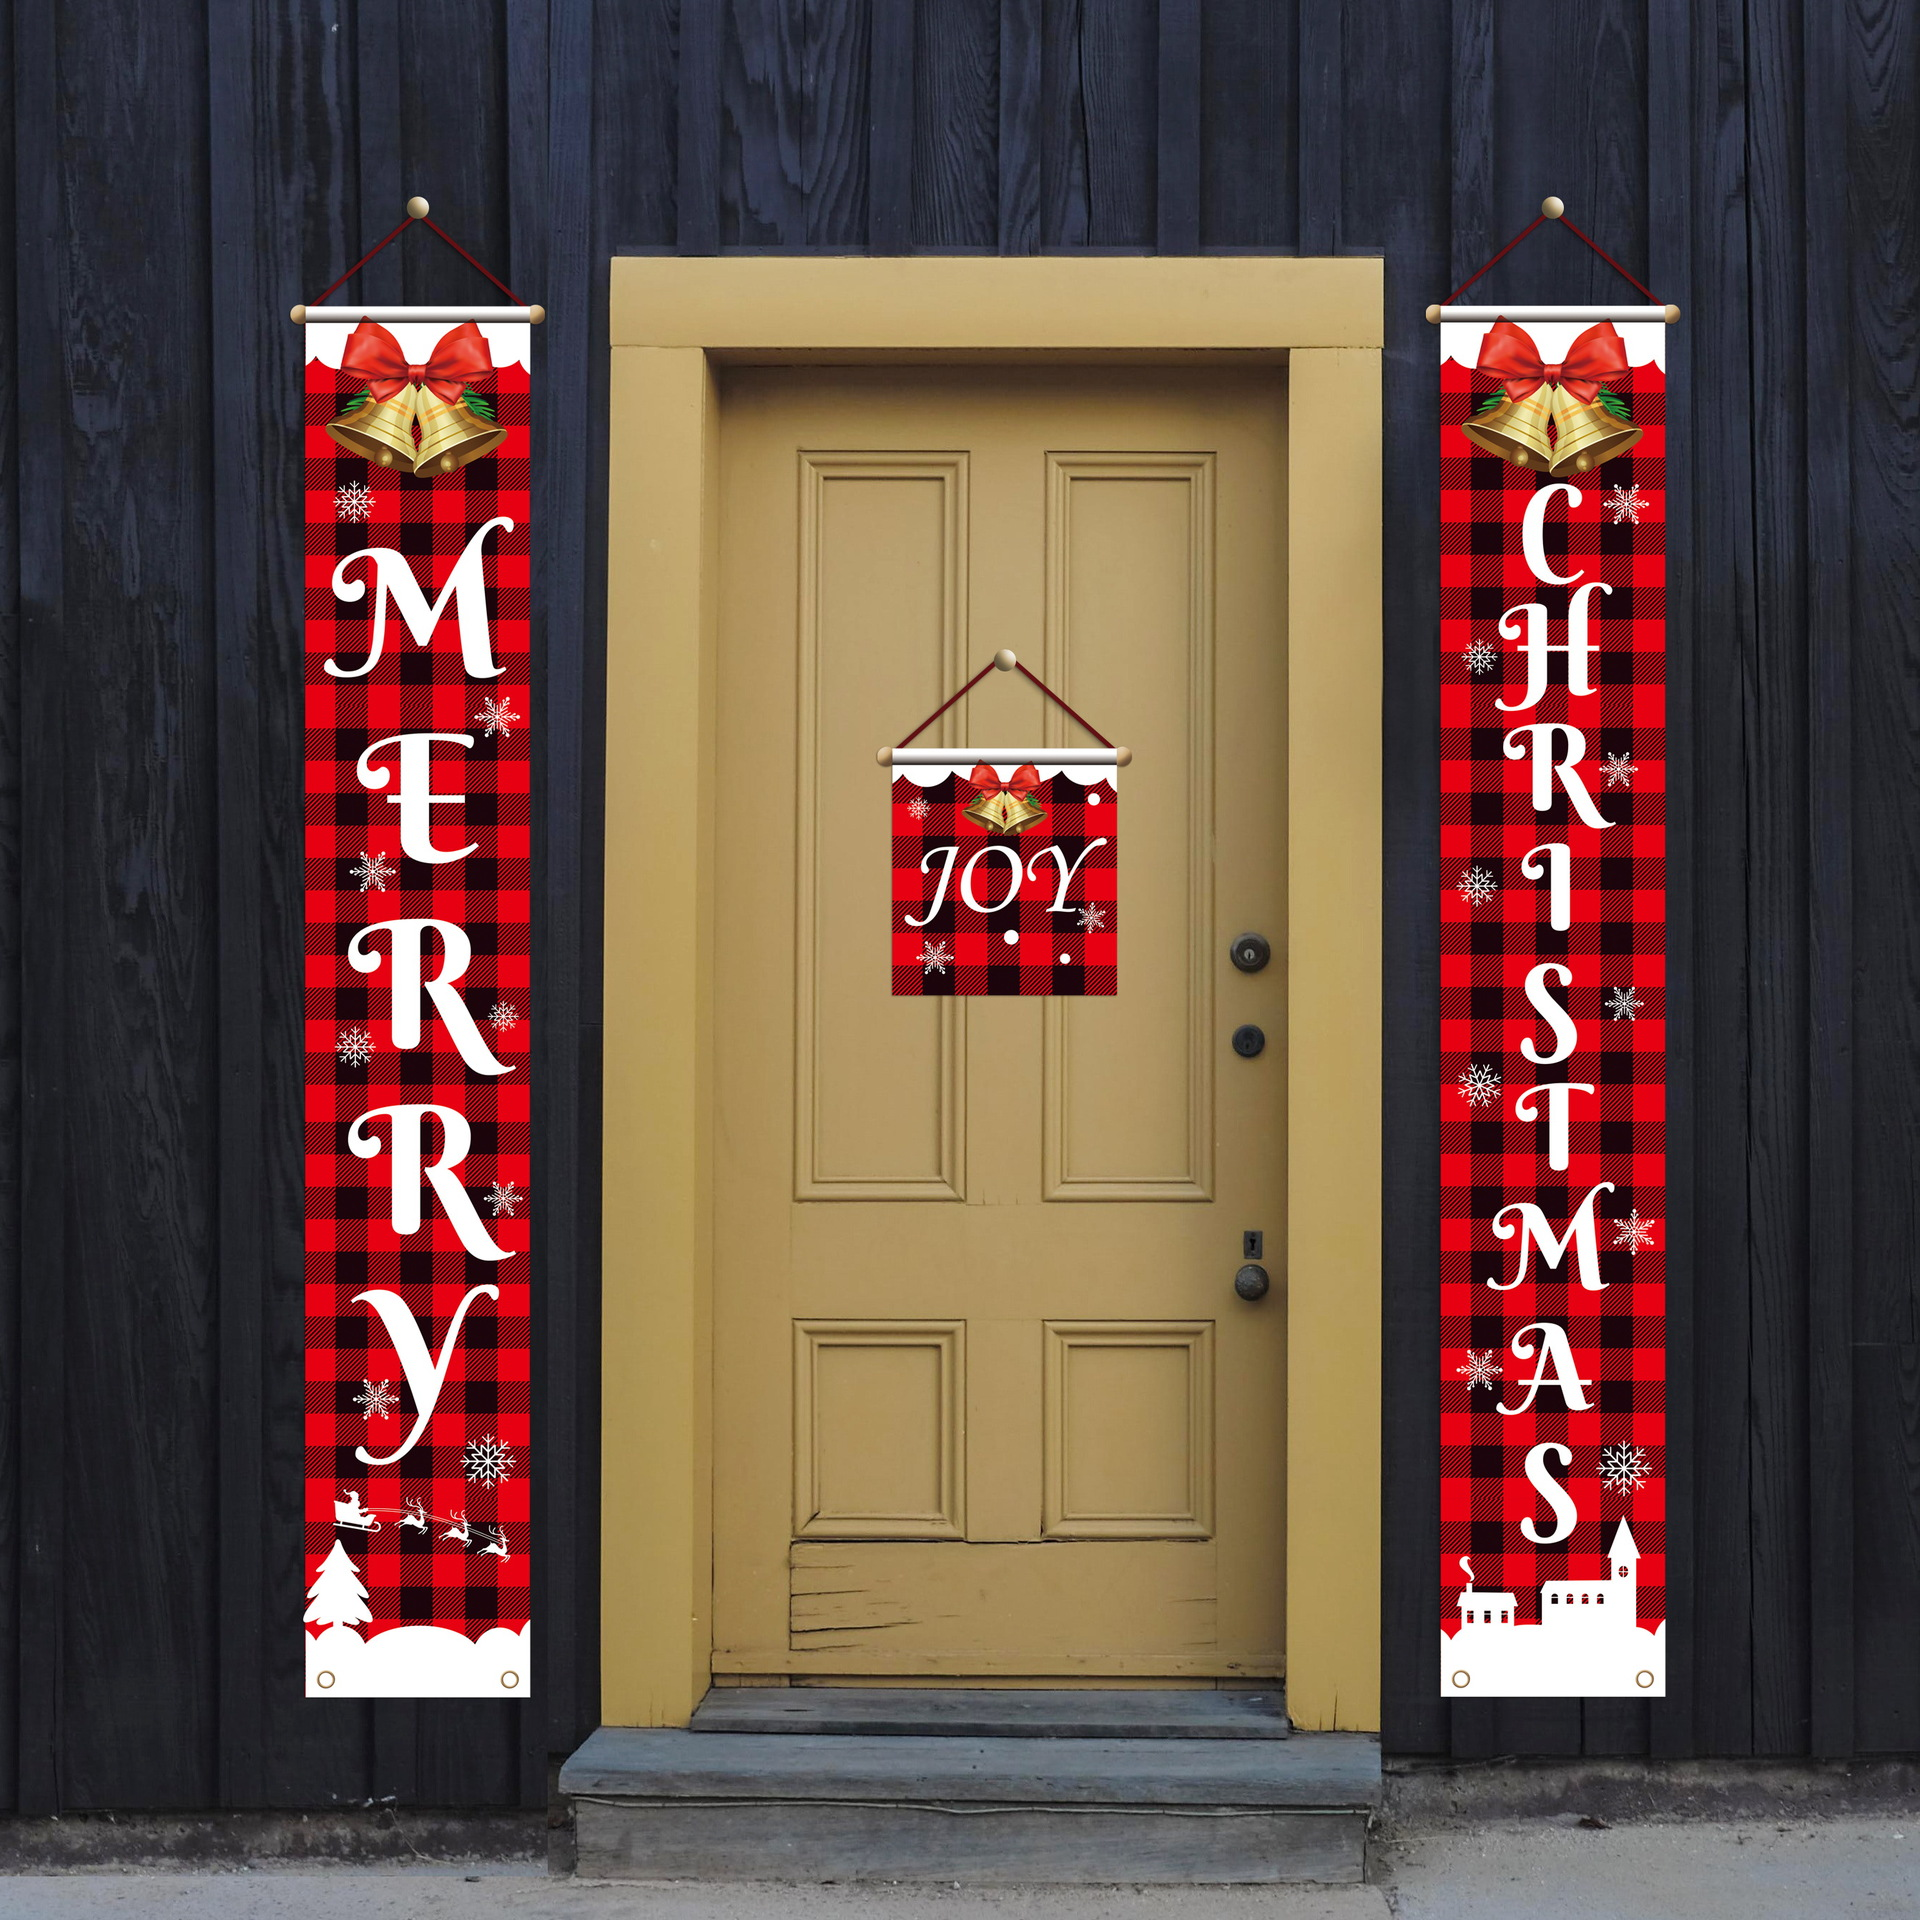 Christmas door curtain door hanging couplet Christmas scene decoration